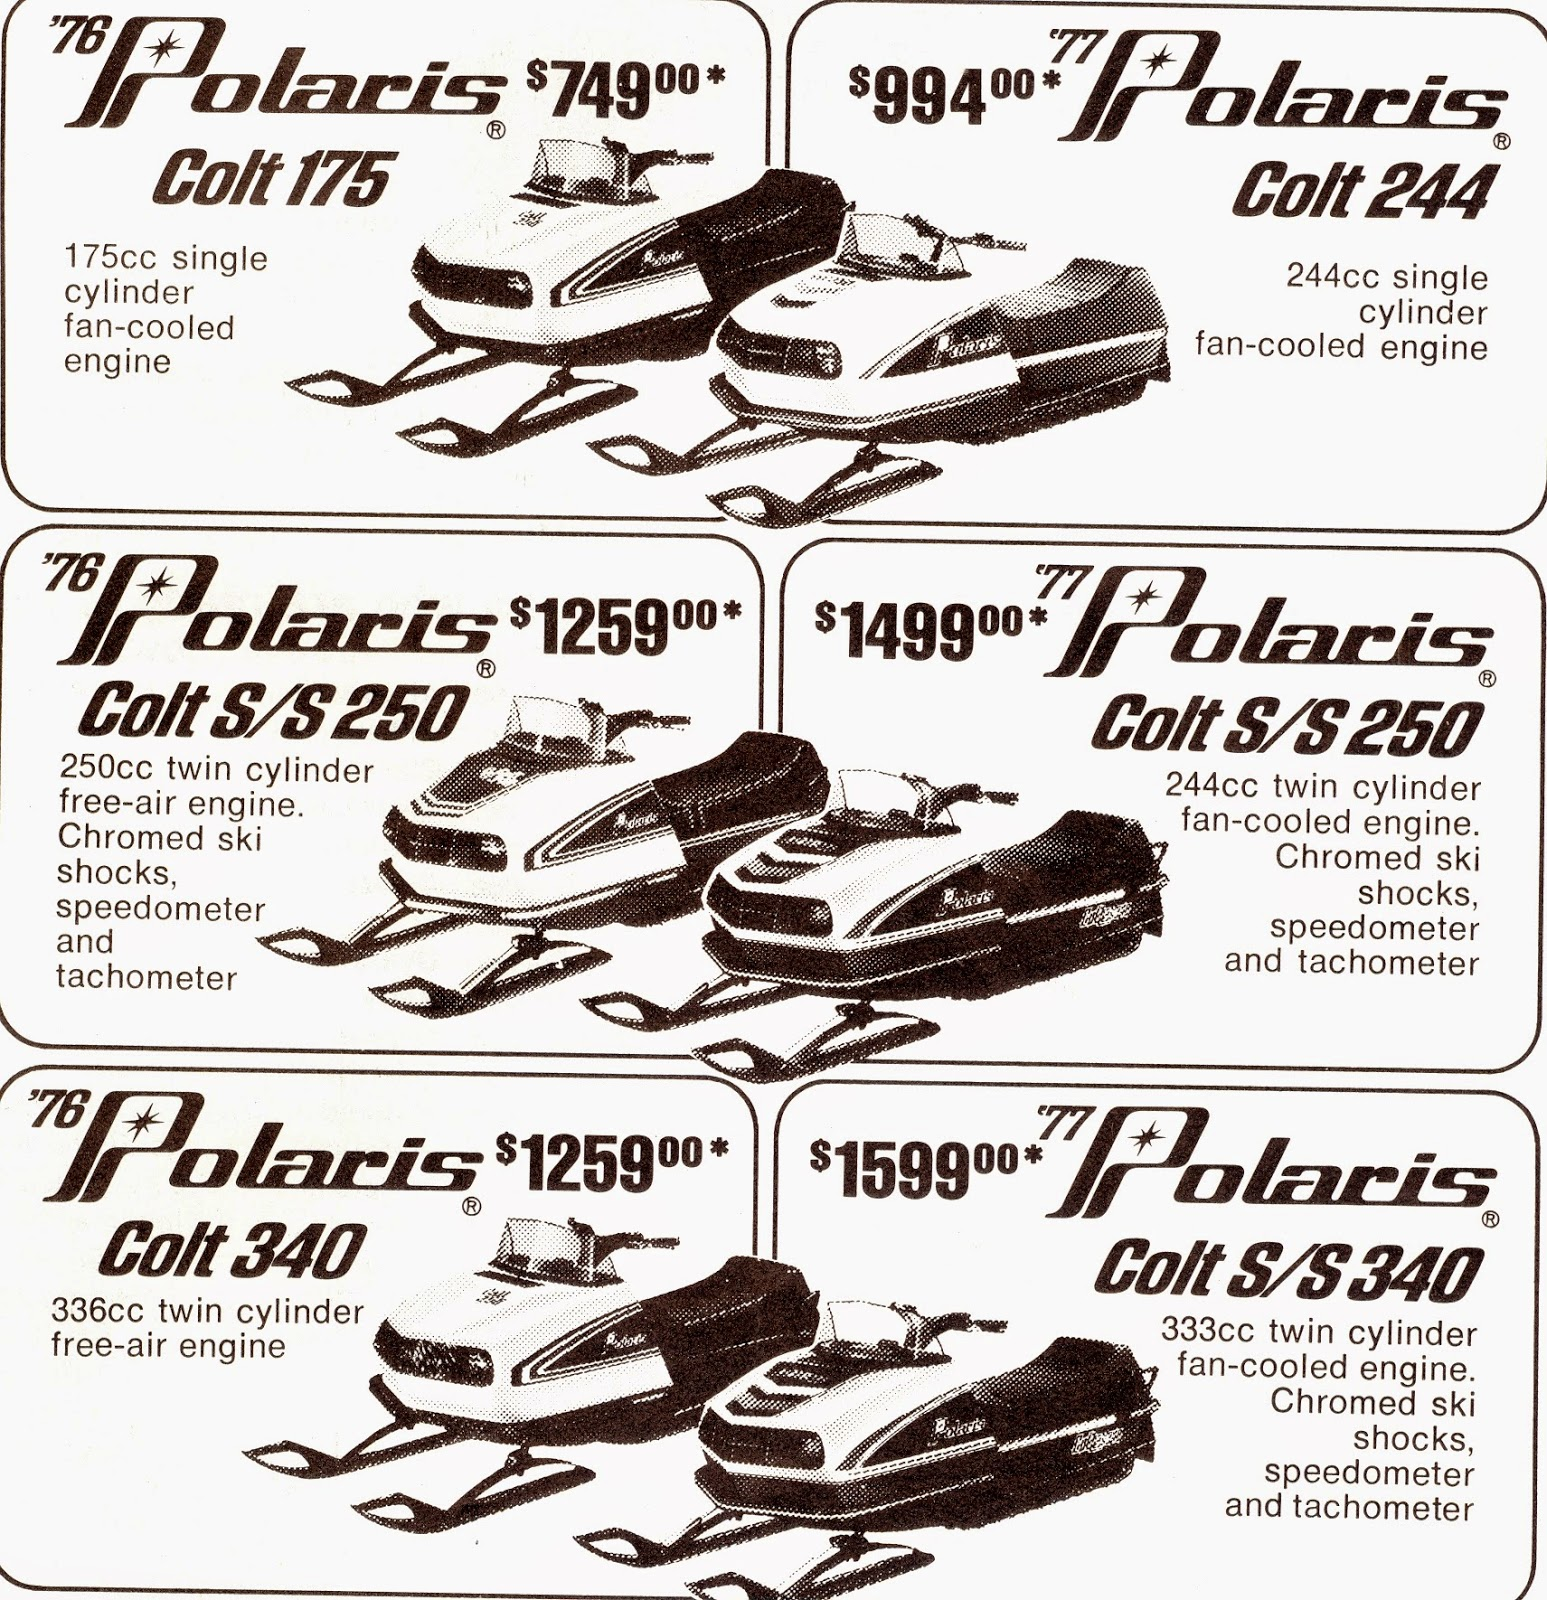 Ski whiz snowmobiles for sale - A Polaris Ad With The Features And Prices Of Their 1976 And1977 Polaris Colt Sleds